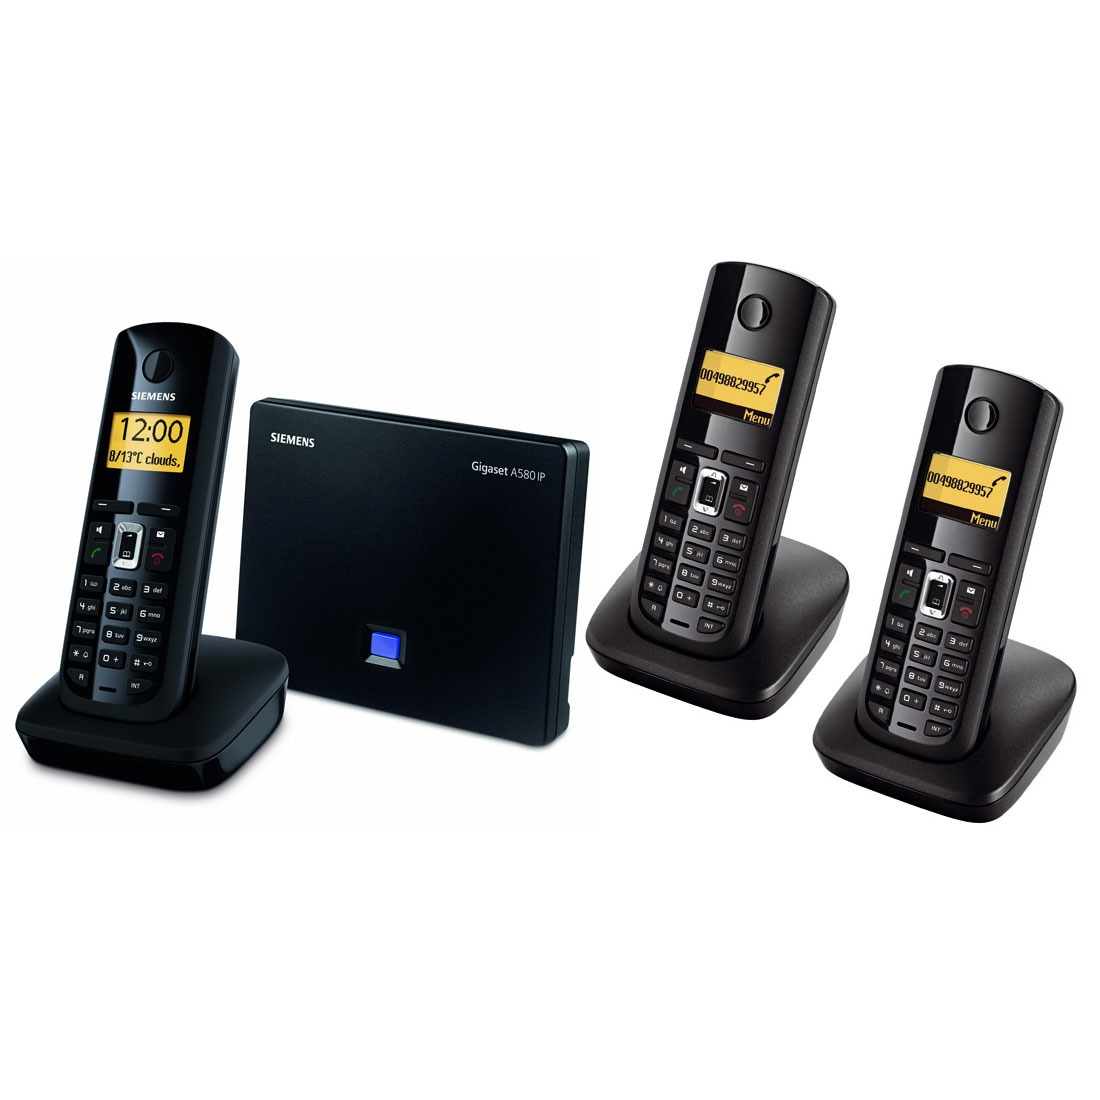 siemens gigaset a580 ip trio t l phone sans fil siemens sur. Black Bedroom Furniture Sets. Home Design Ideas